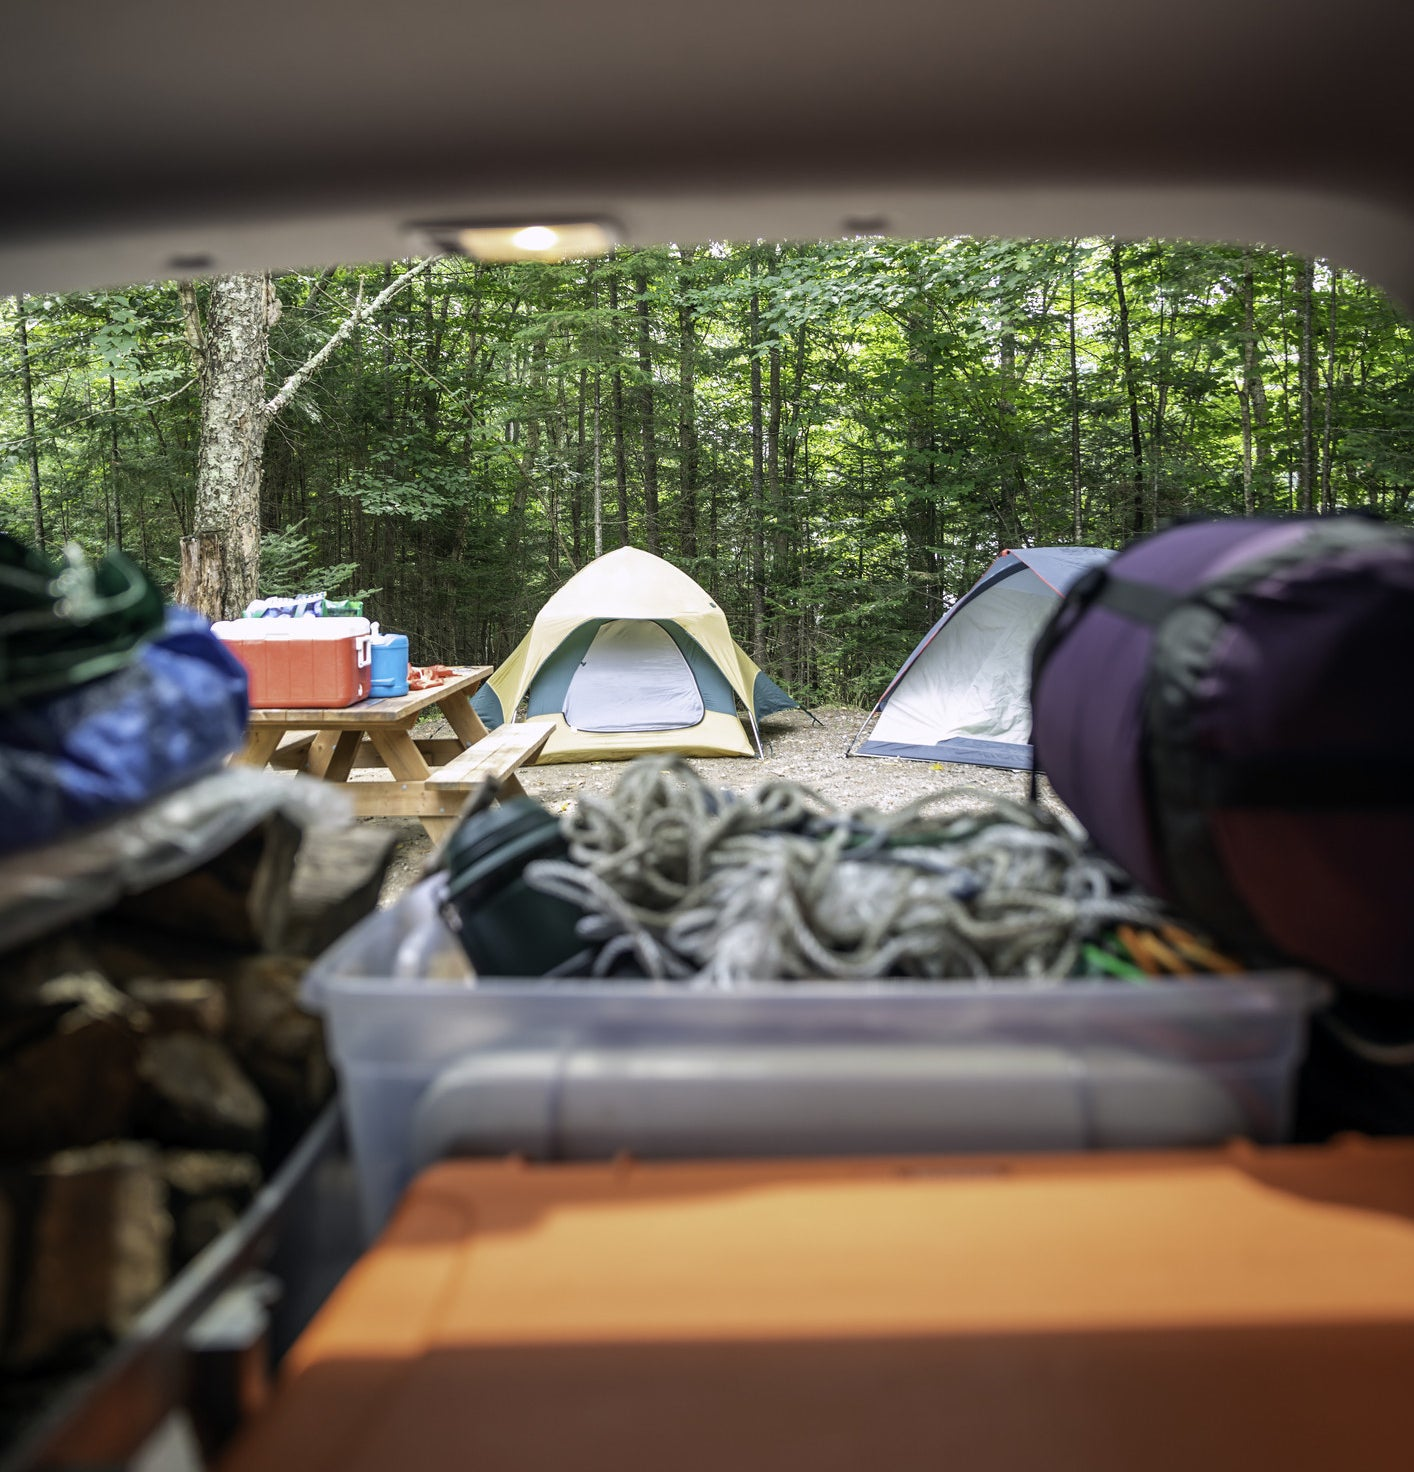 A car trunk full of camping gear with a tent in the background